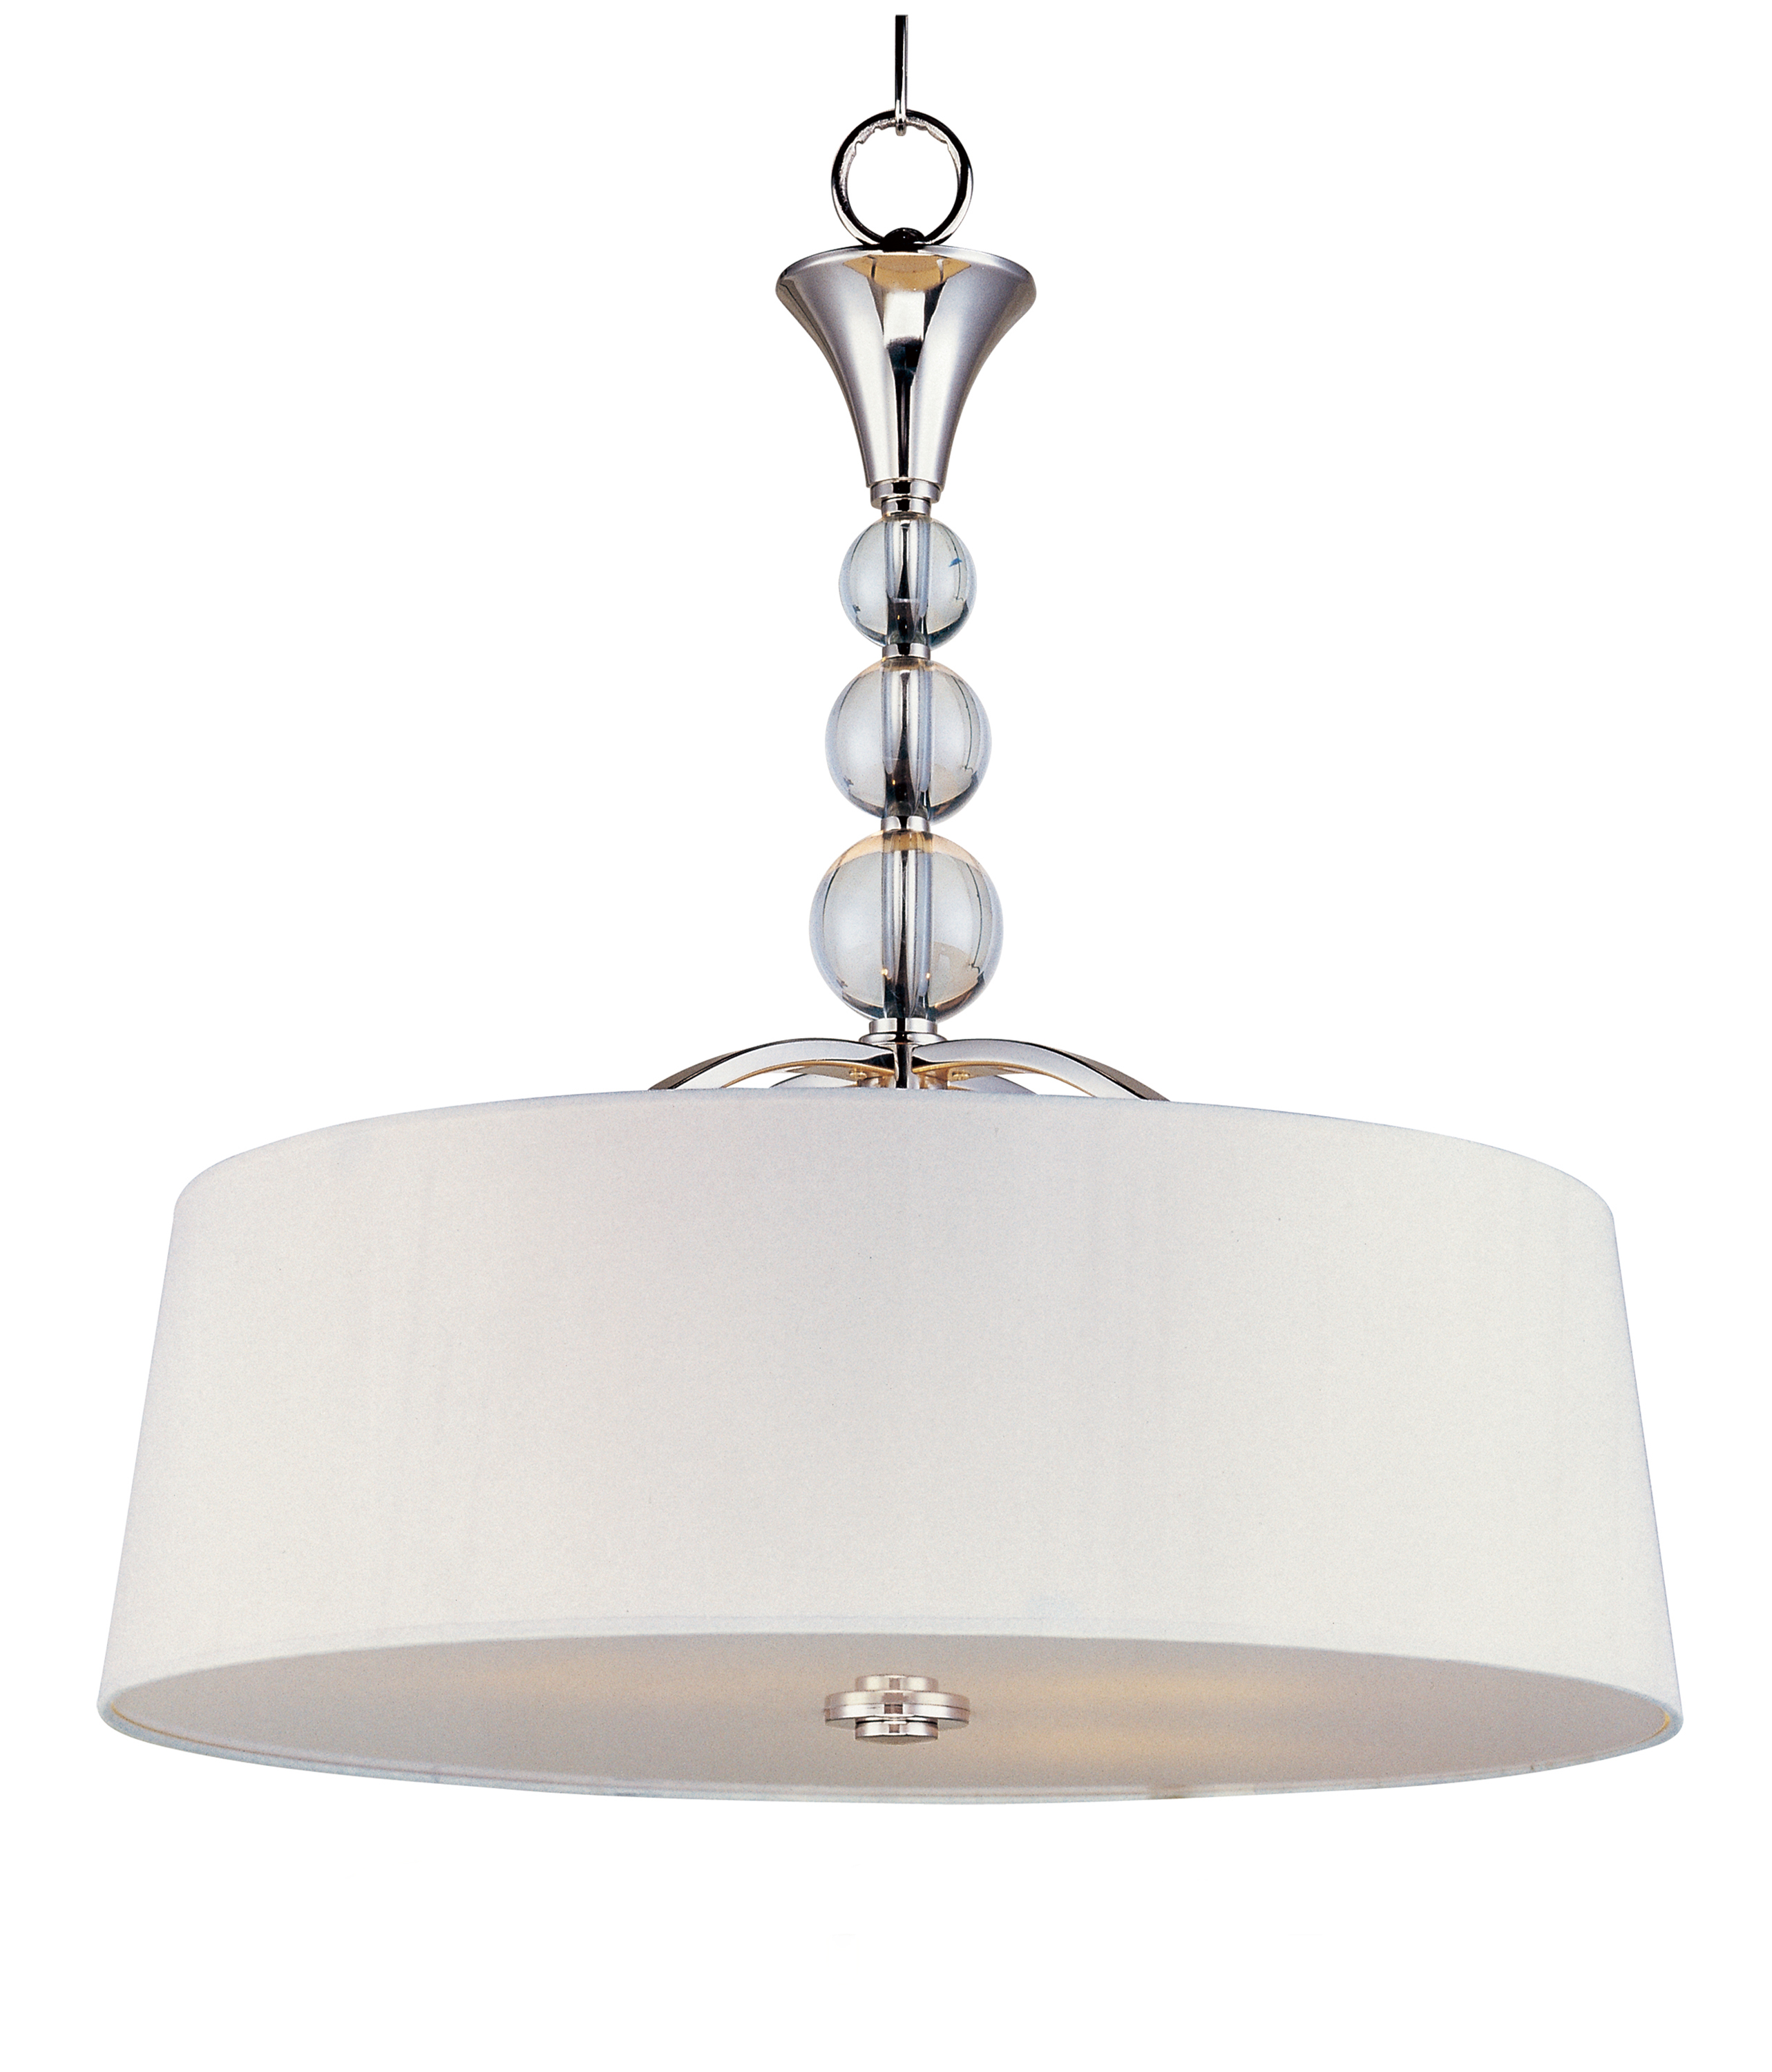 Entry Foyer Hanging Light : Rondo light pendant maxim lighting